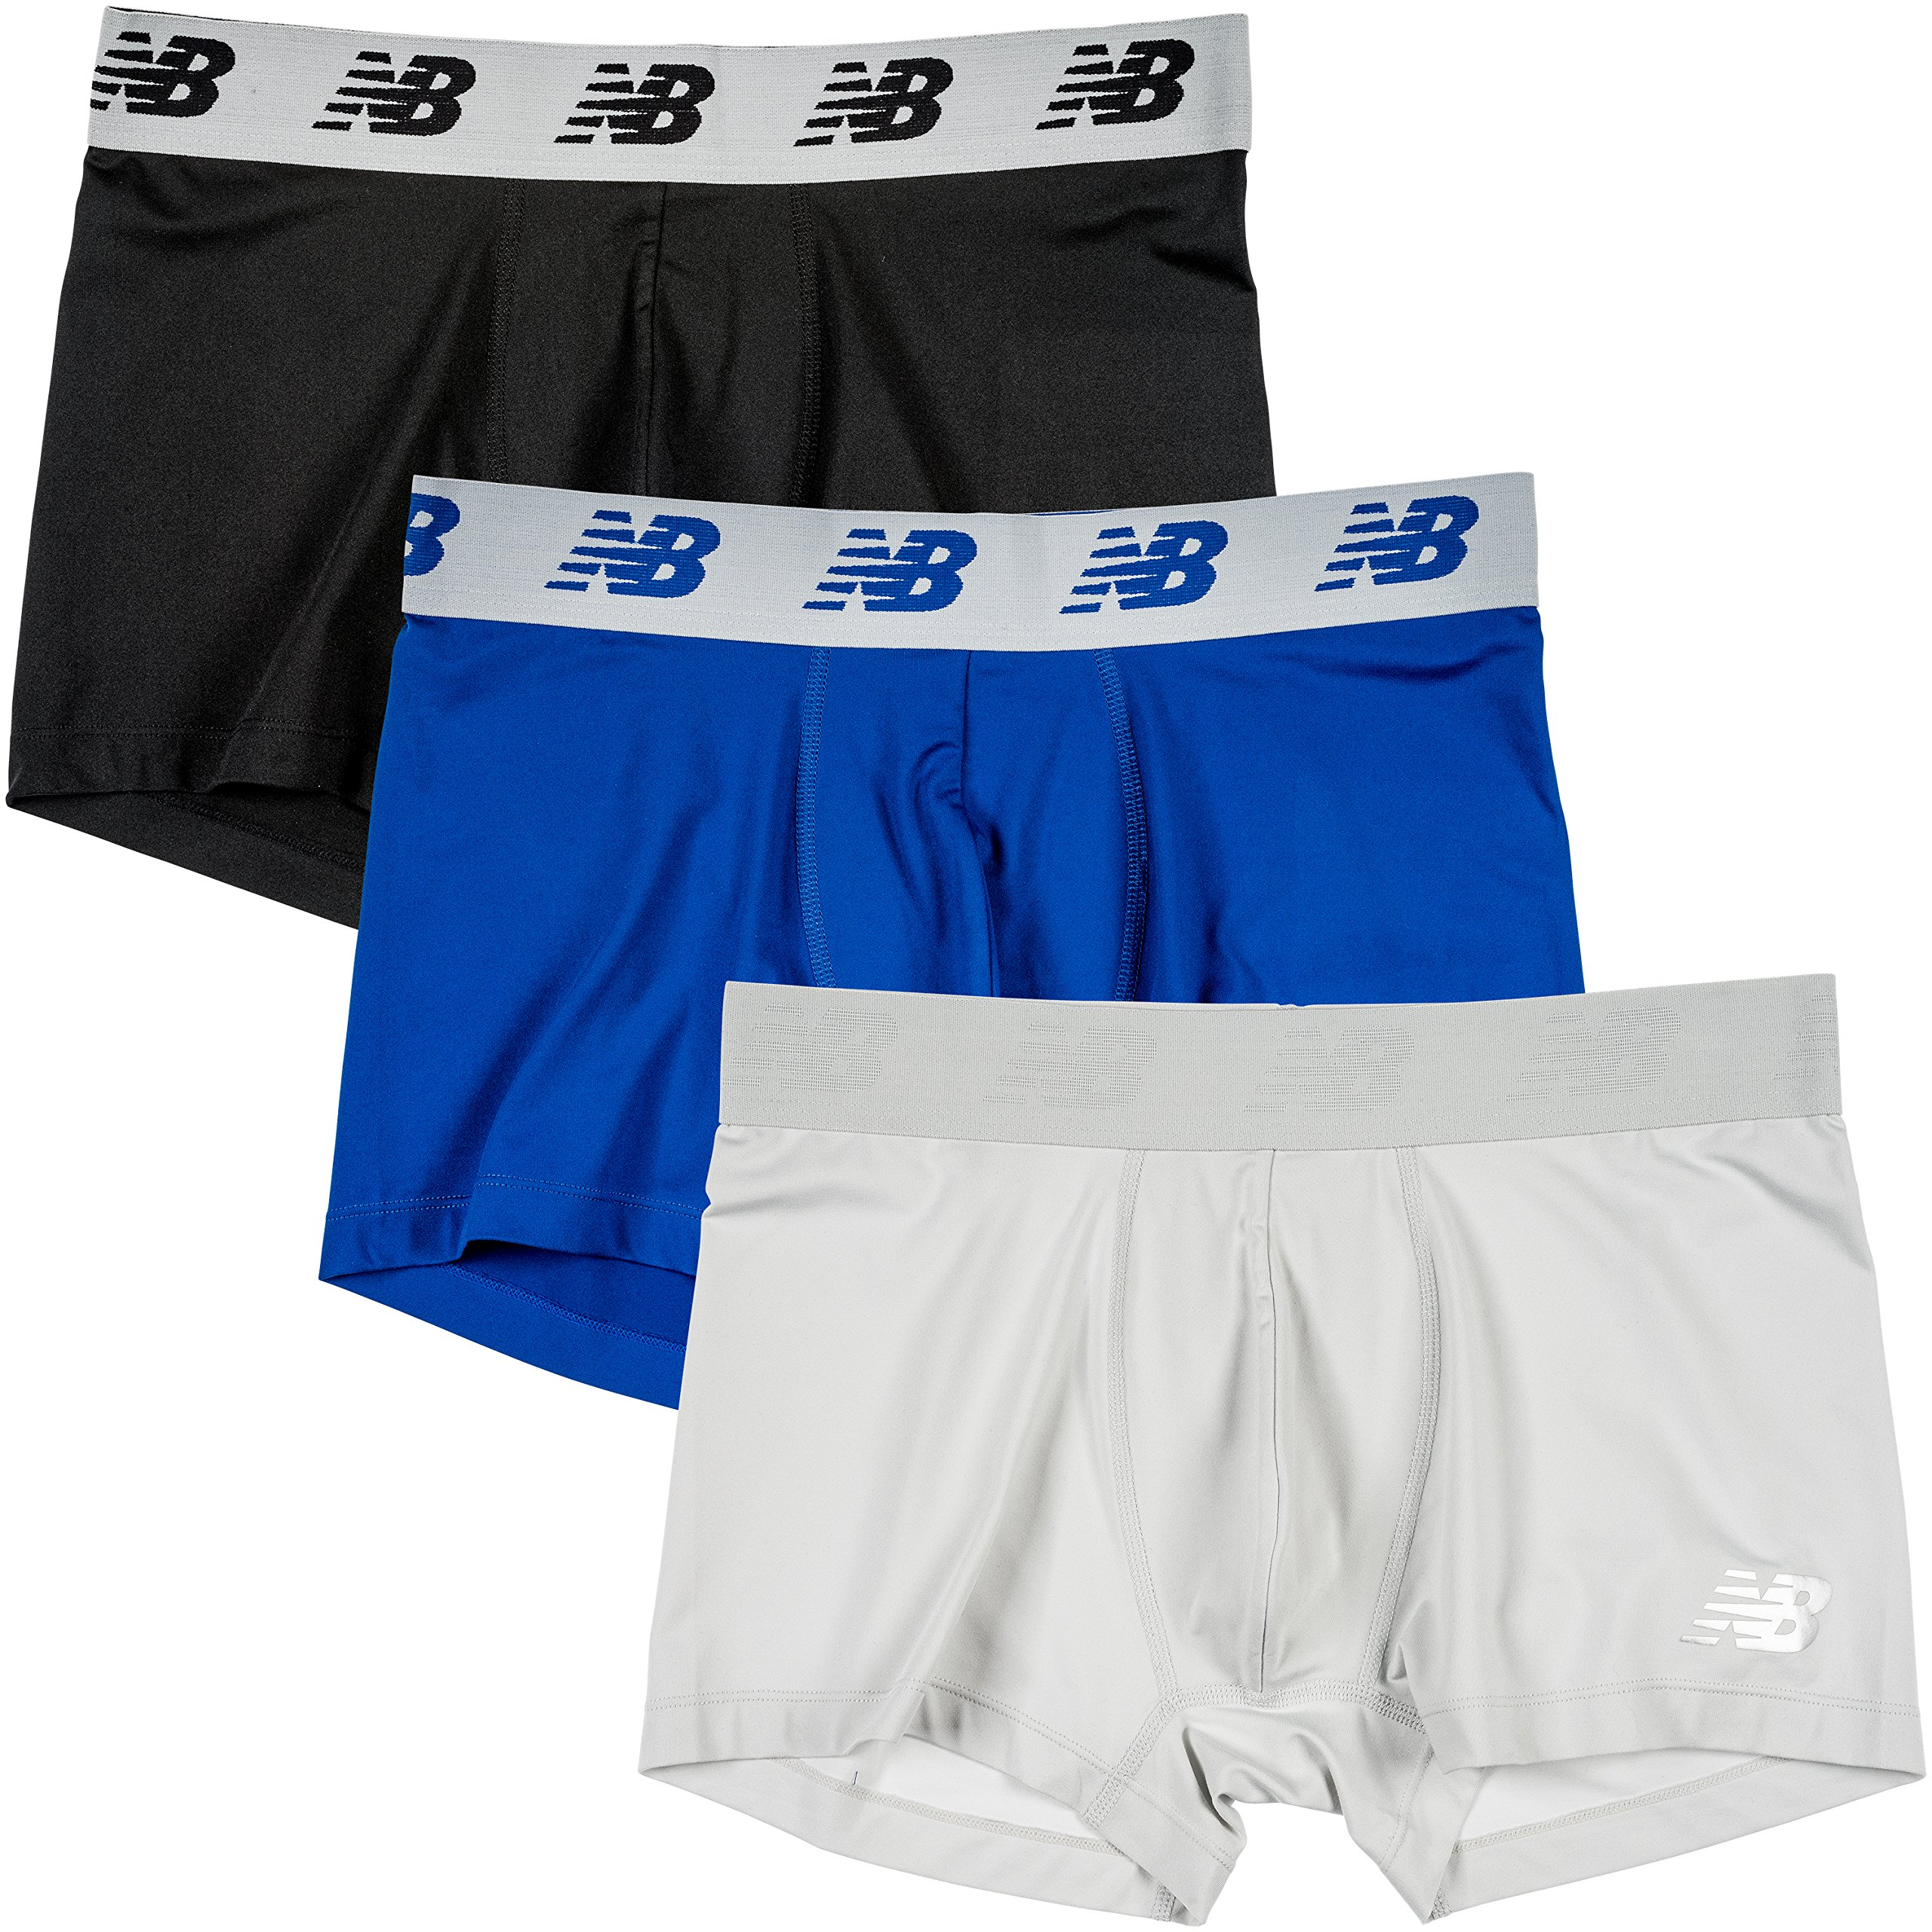 New Balance Men's 3'' Boxer Brief No Fly, with Pouch, 3-Pack,Black/Team Royal/Concrete, Medium (32''-34'')